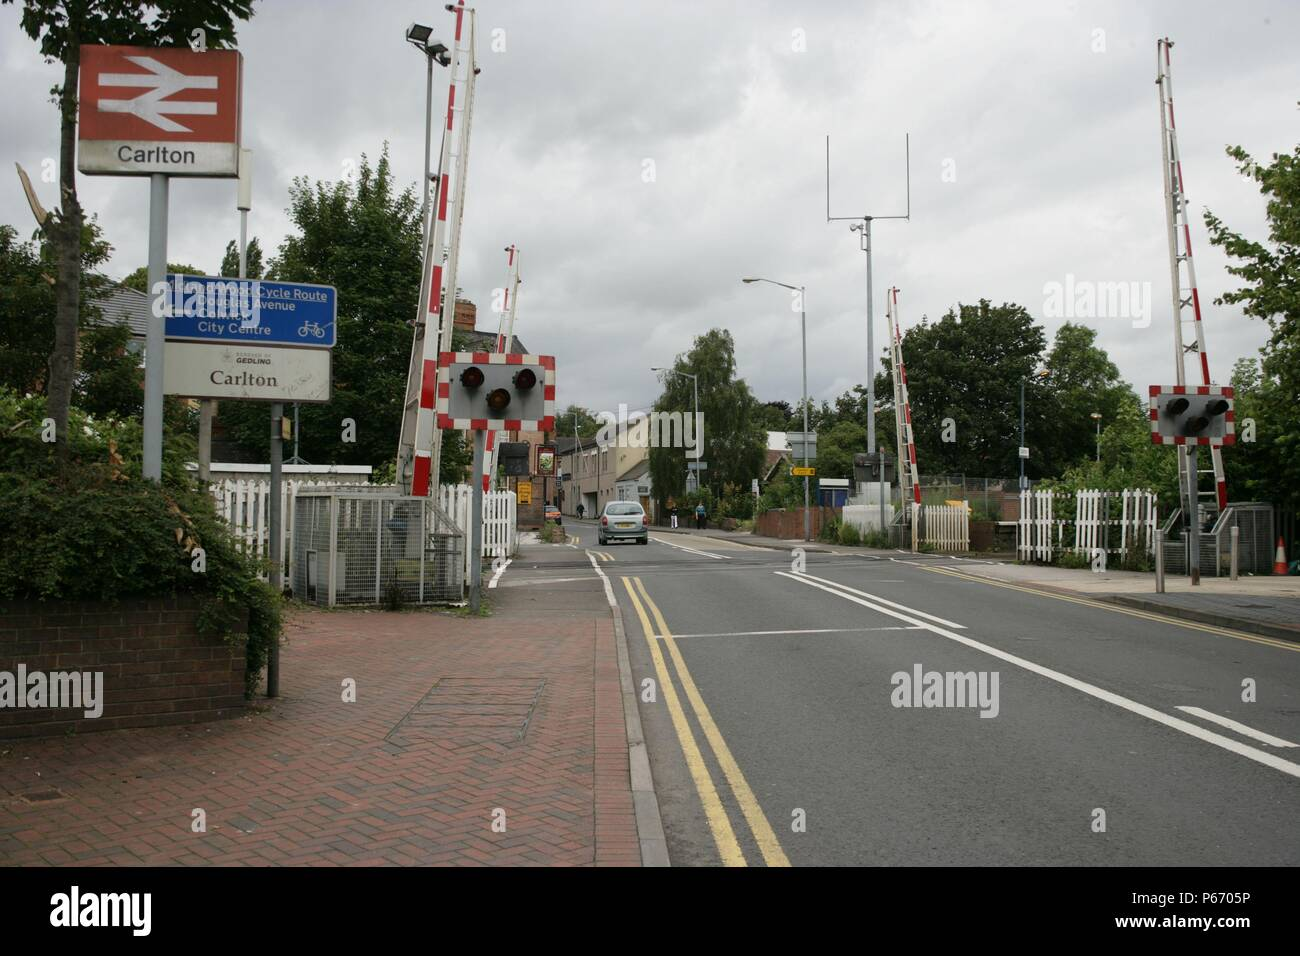 Station entrance and level crossing at Carlton station, Nottinghamshire. 2007 - Stock Image